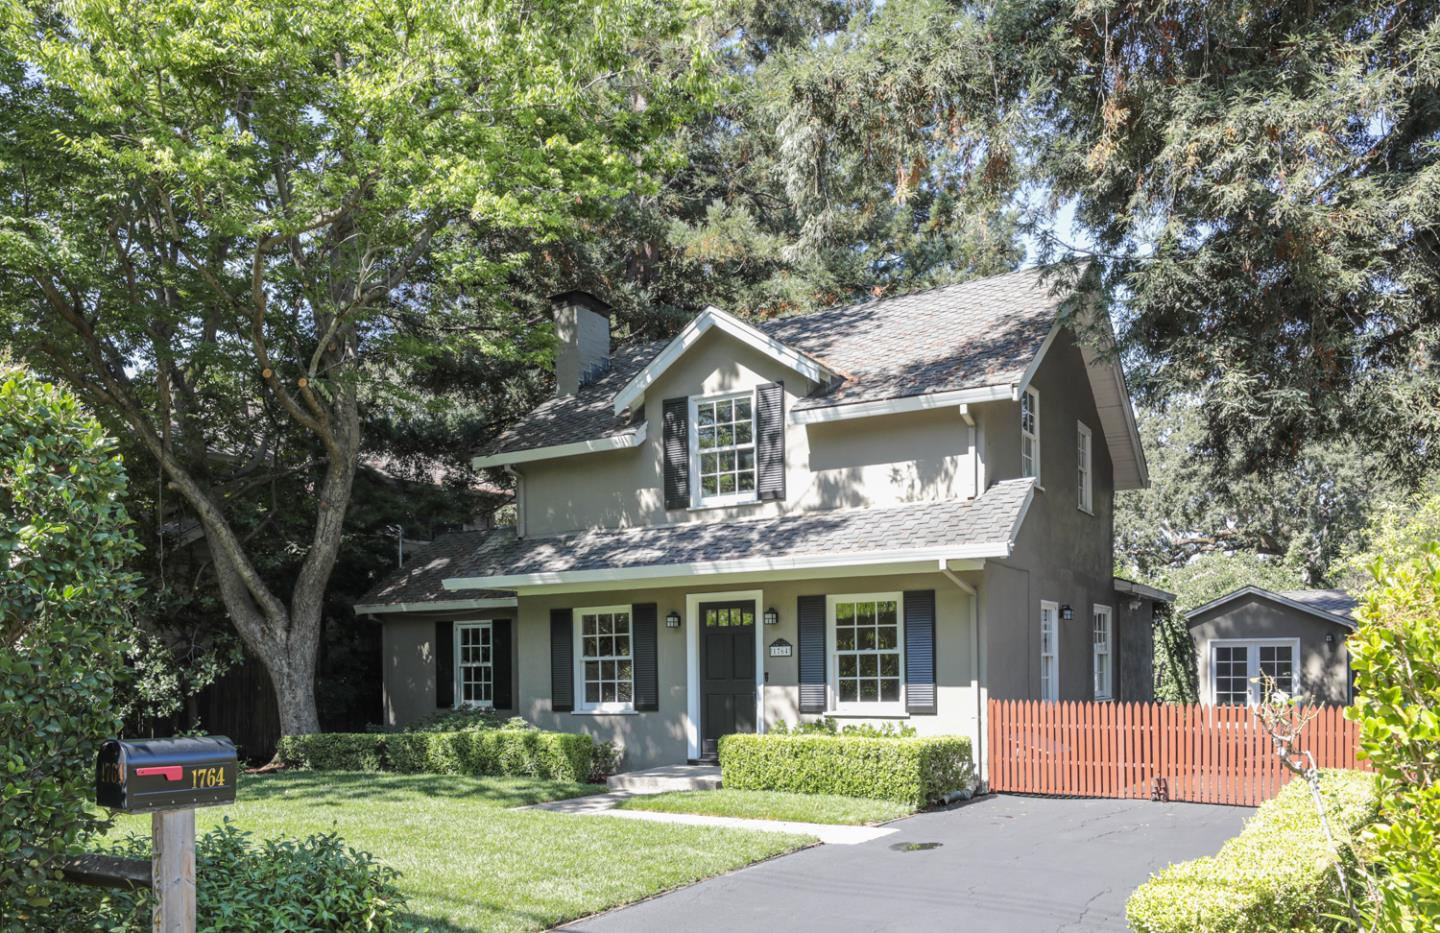 1764 Stockbridge AVE, Redwood City, California